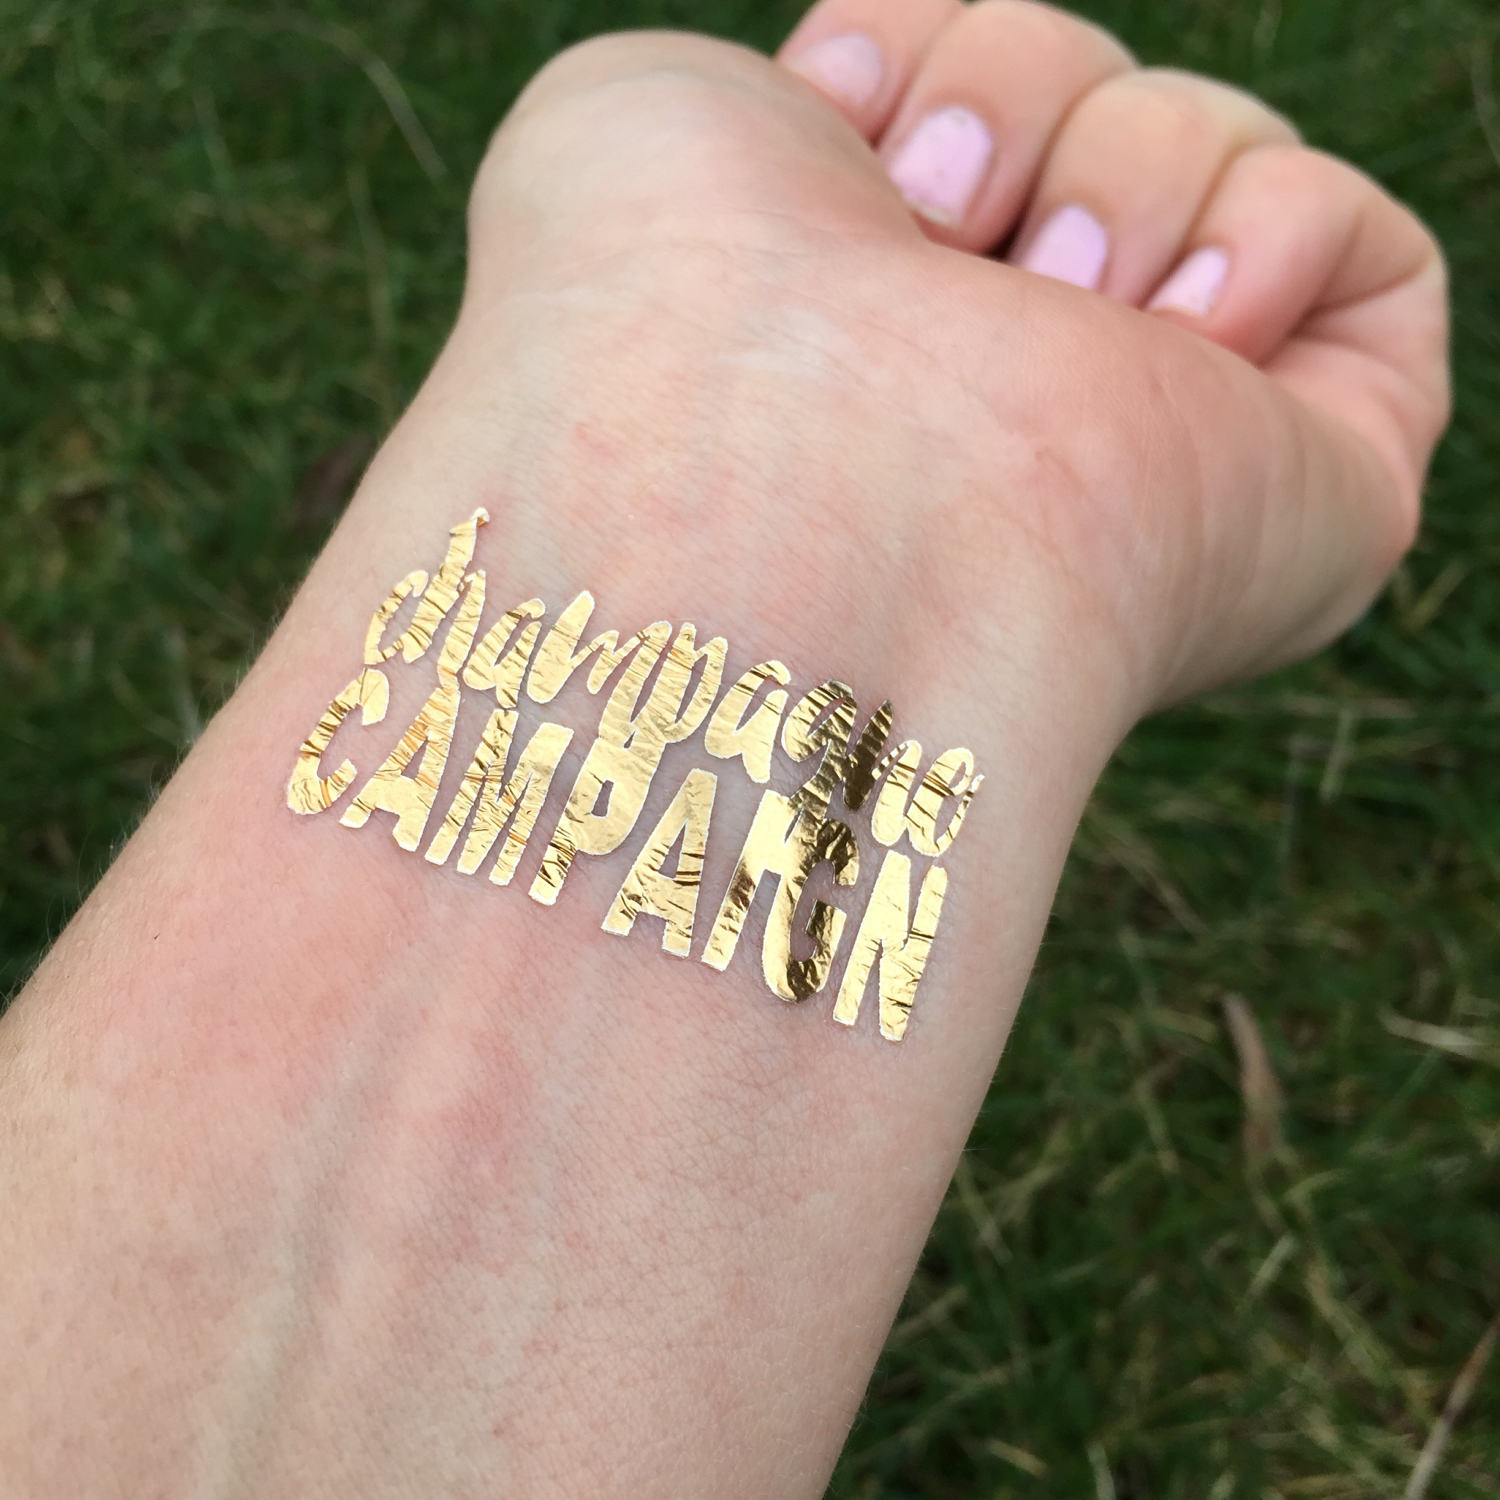 Champagne Campaign Gold FoilTattoos Temporary Tattoo | Etsy